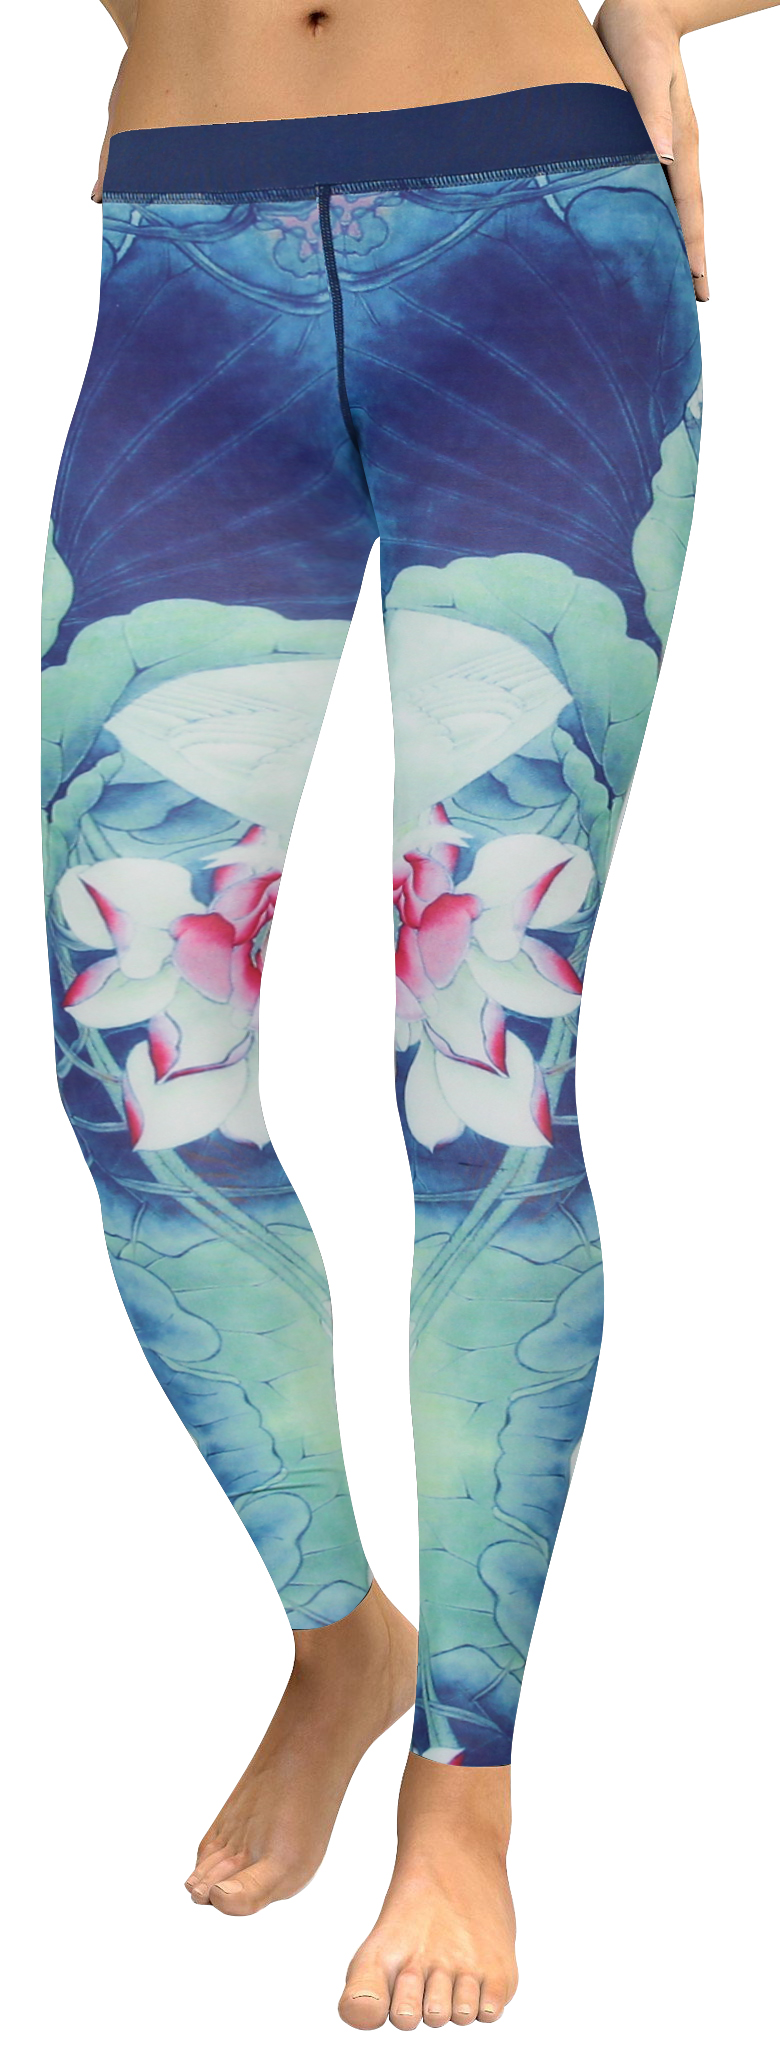 High waistband Blue lotus leave legging (1)